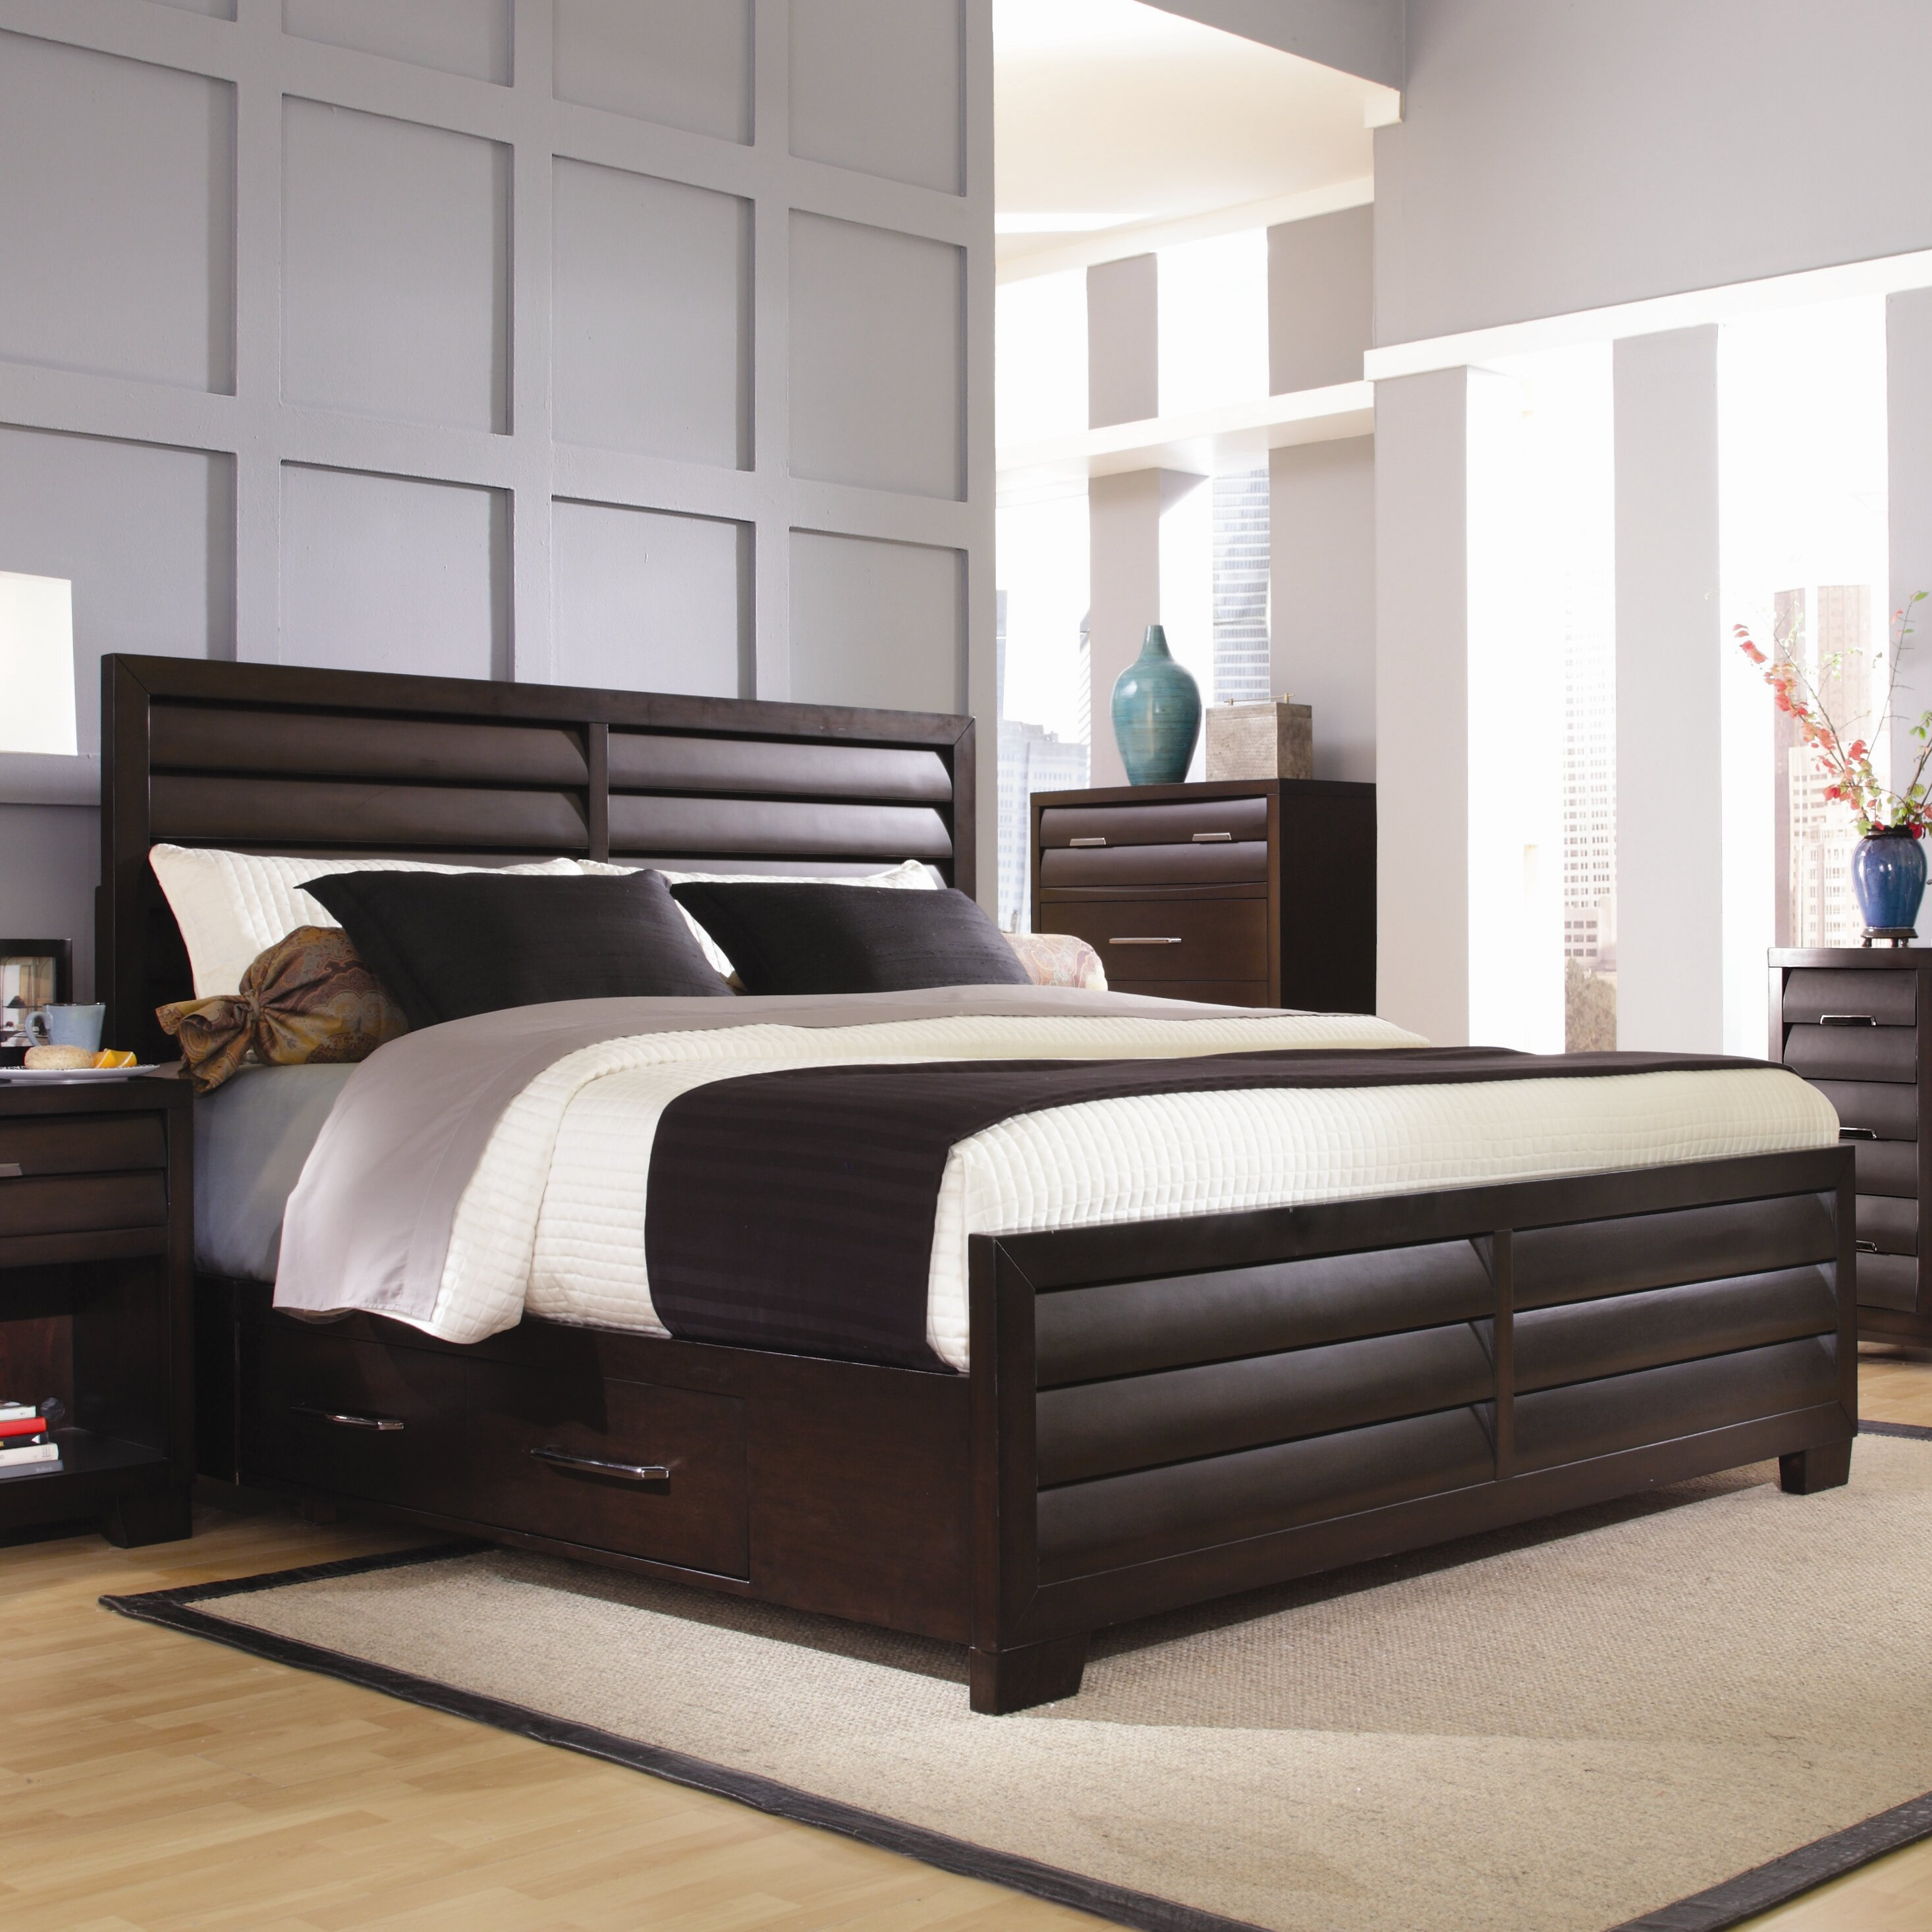 Pulaski Tangerine 330 Panel Customizable Bedroom Set